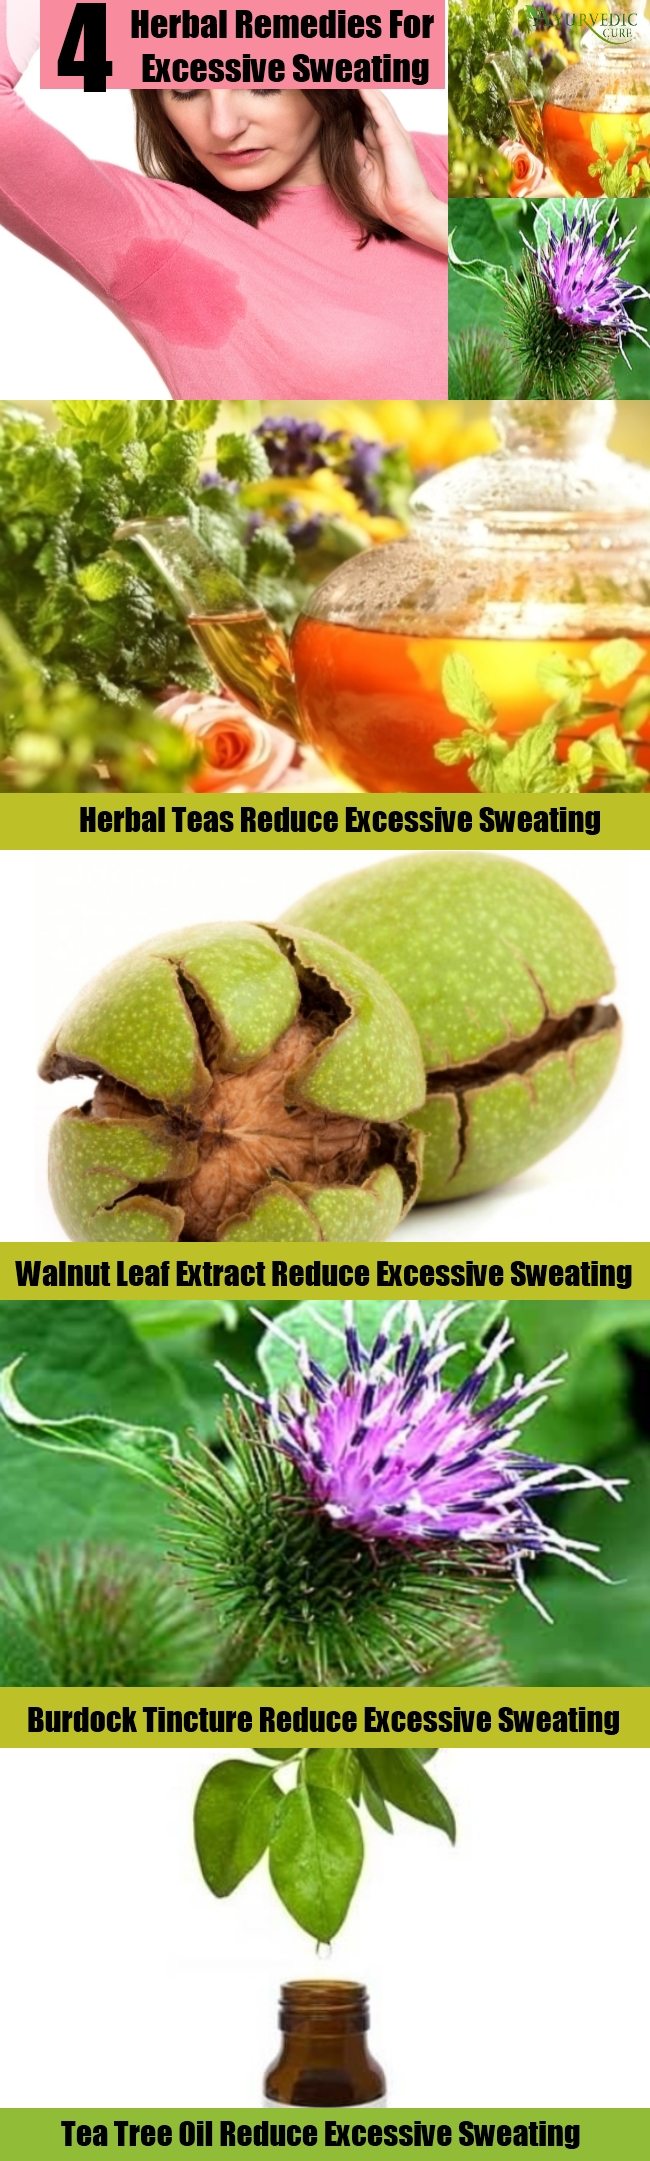 Simple Herbal Remedies For Excessive Sweating